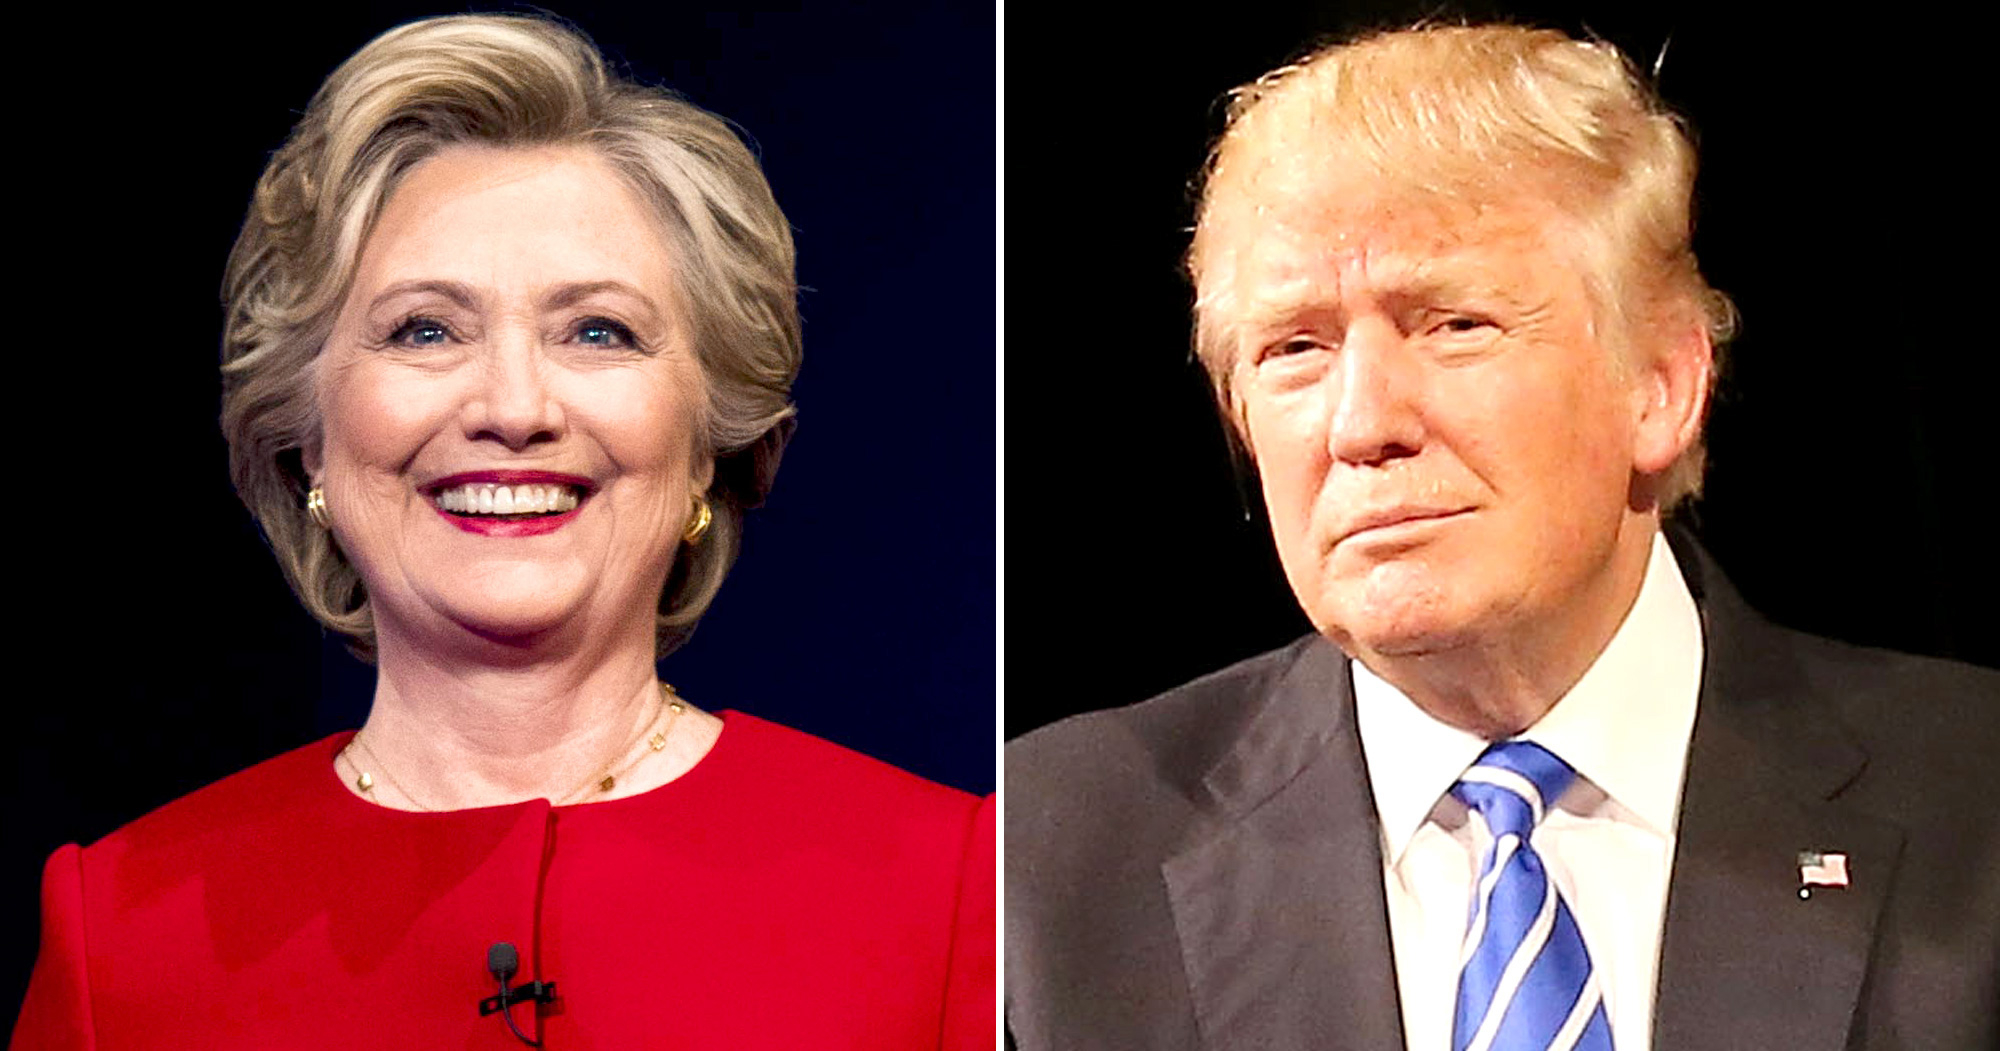 Donald Trump and Hillary Clinton Battle Again in Second Presidential Debate 2016: Everything That Happened